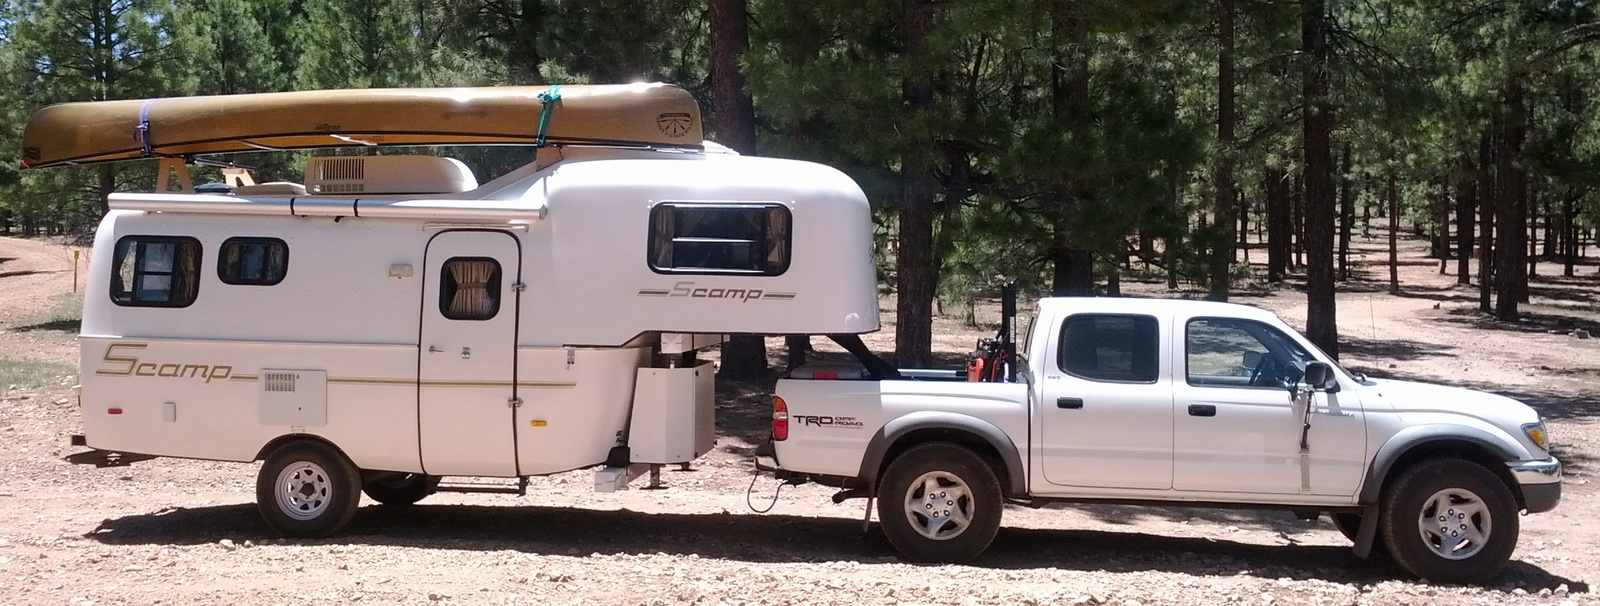 Foot Scamp Travel Trailer For Sale